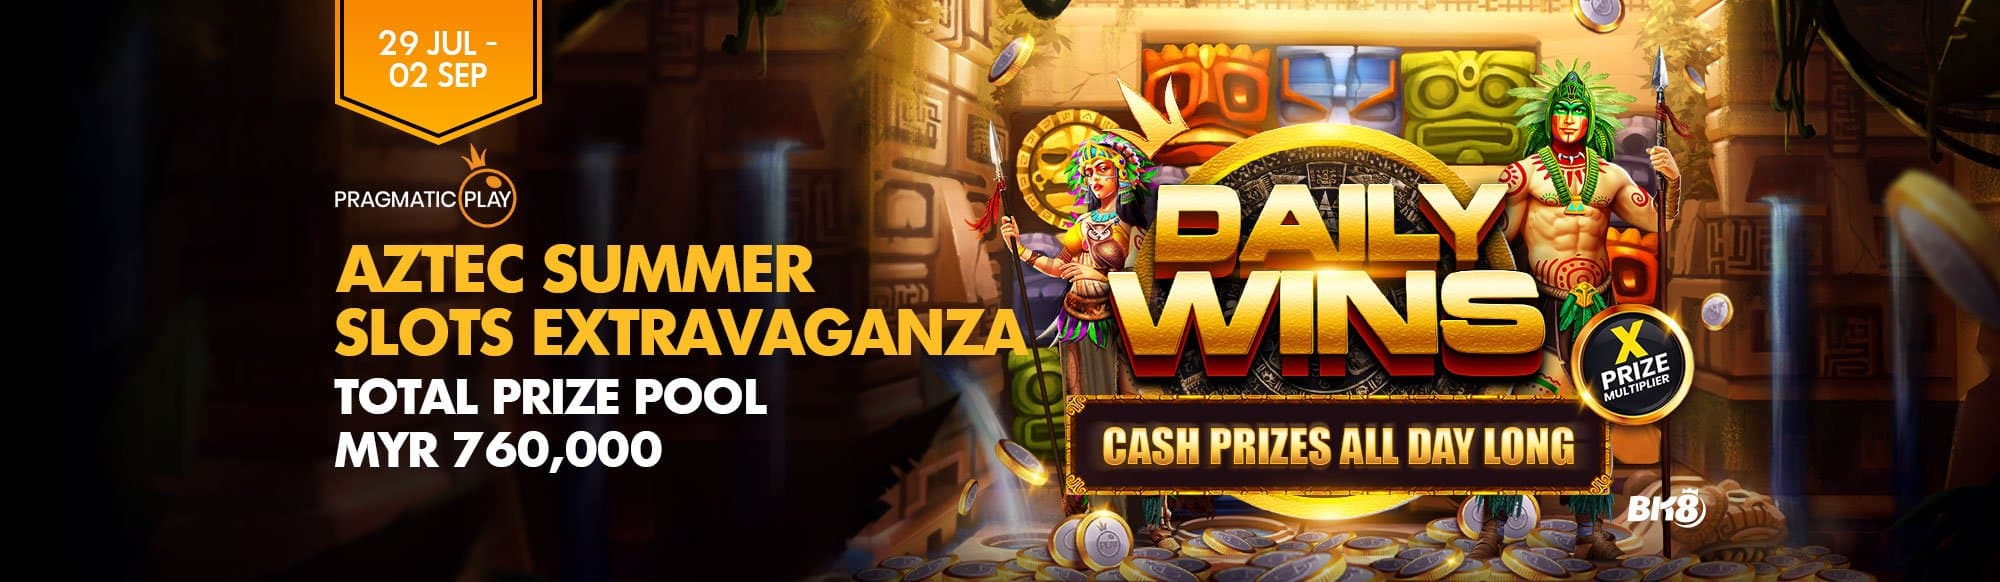 BK8 The Trusted & Biggest Brand In Singapore Online Casino